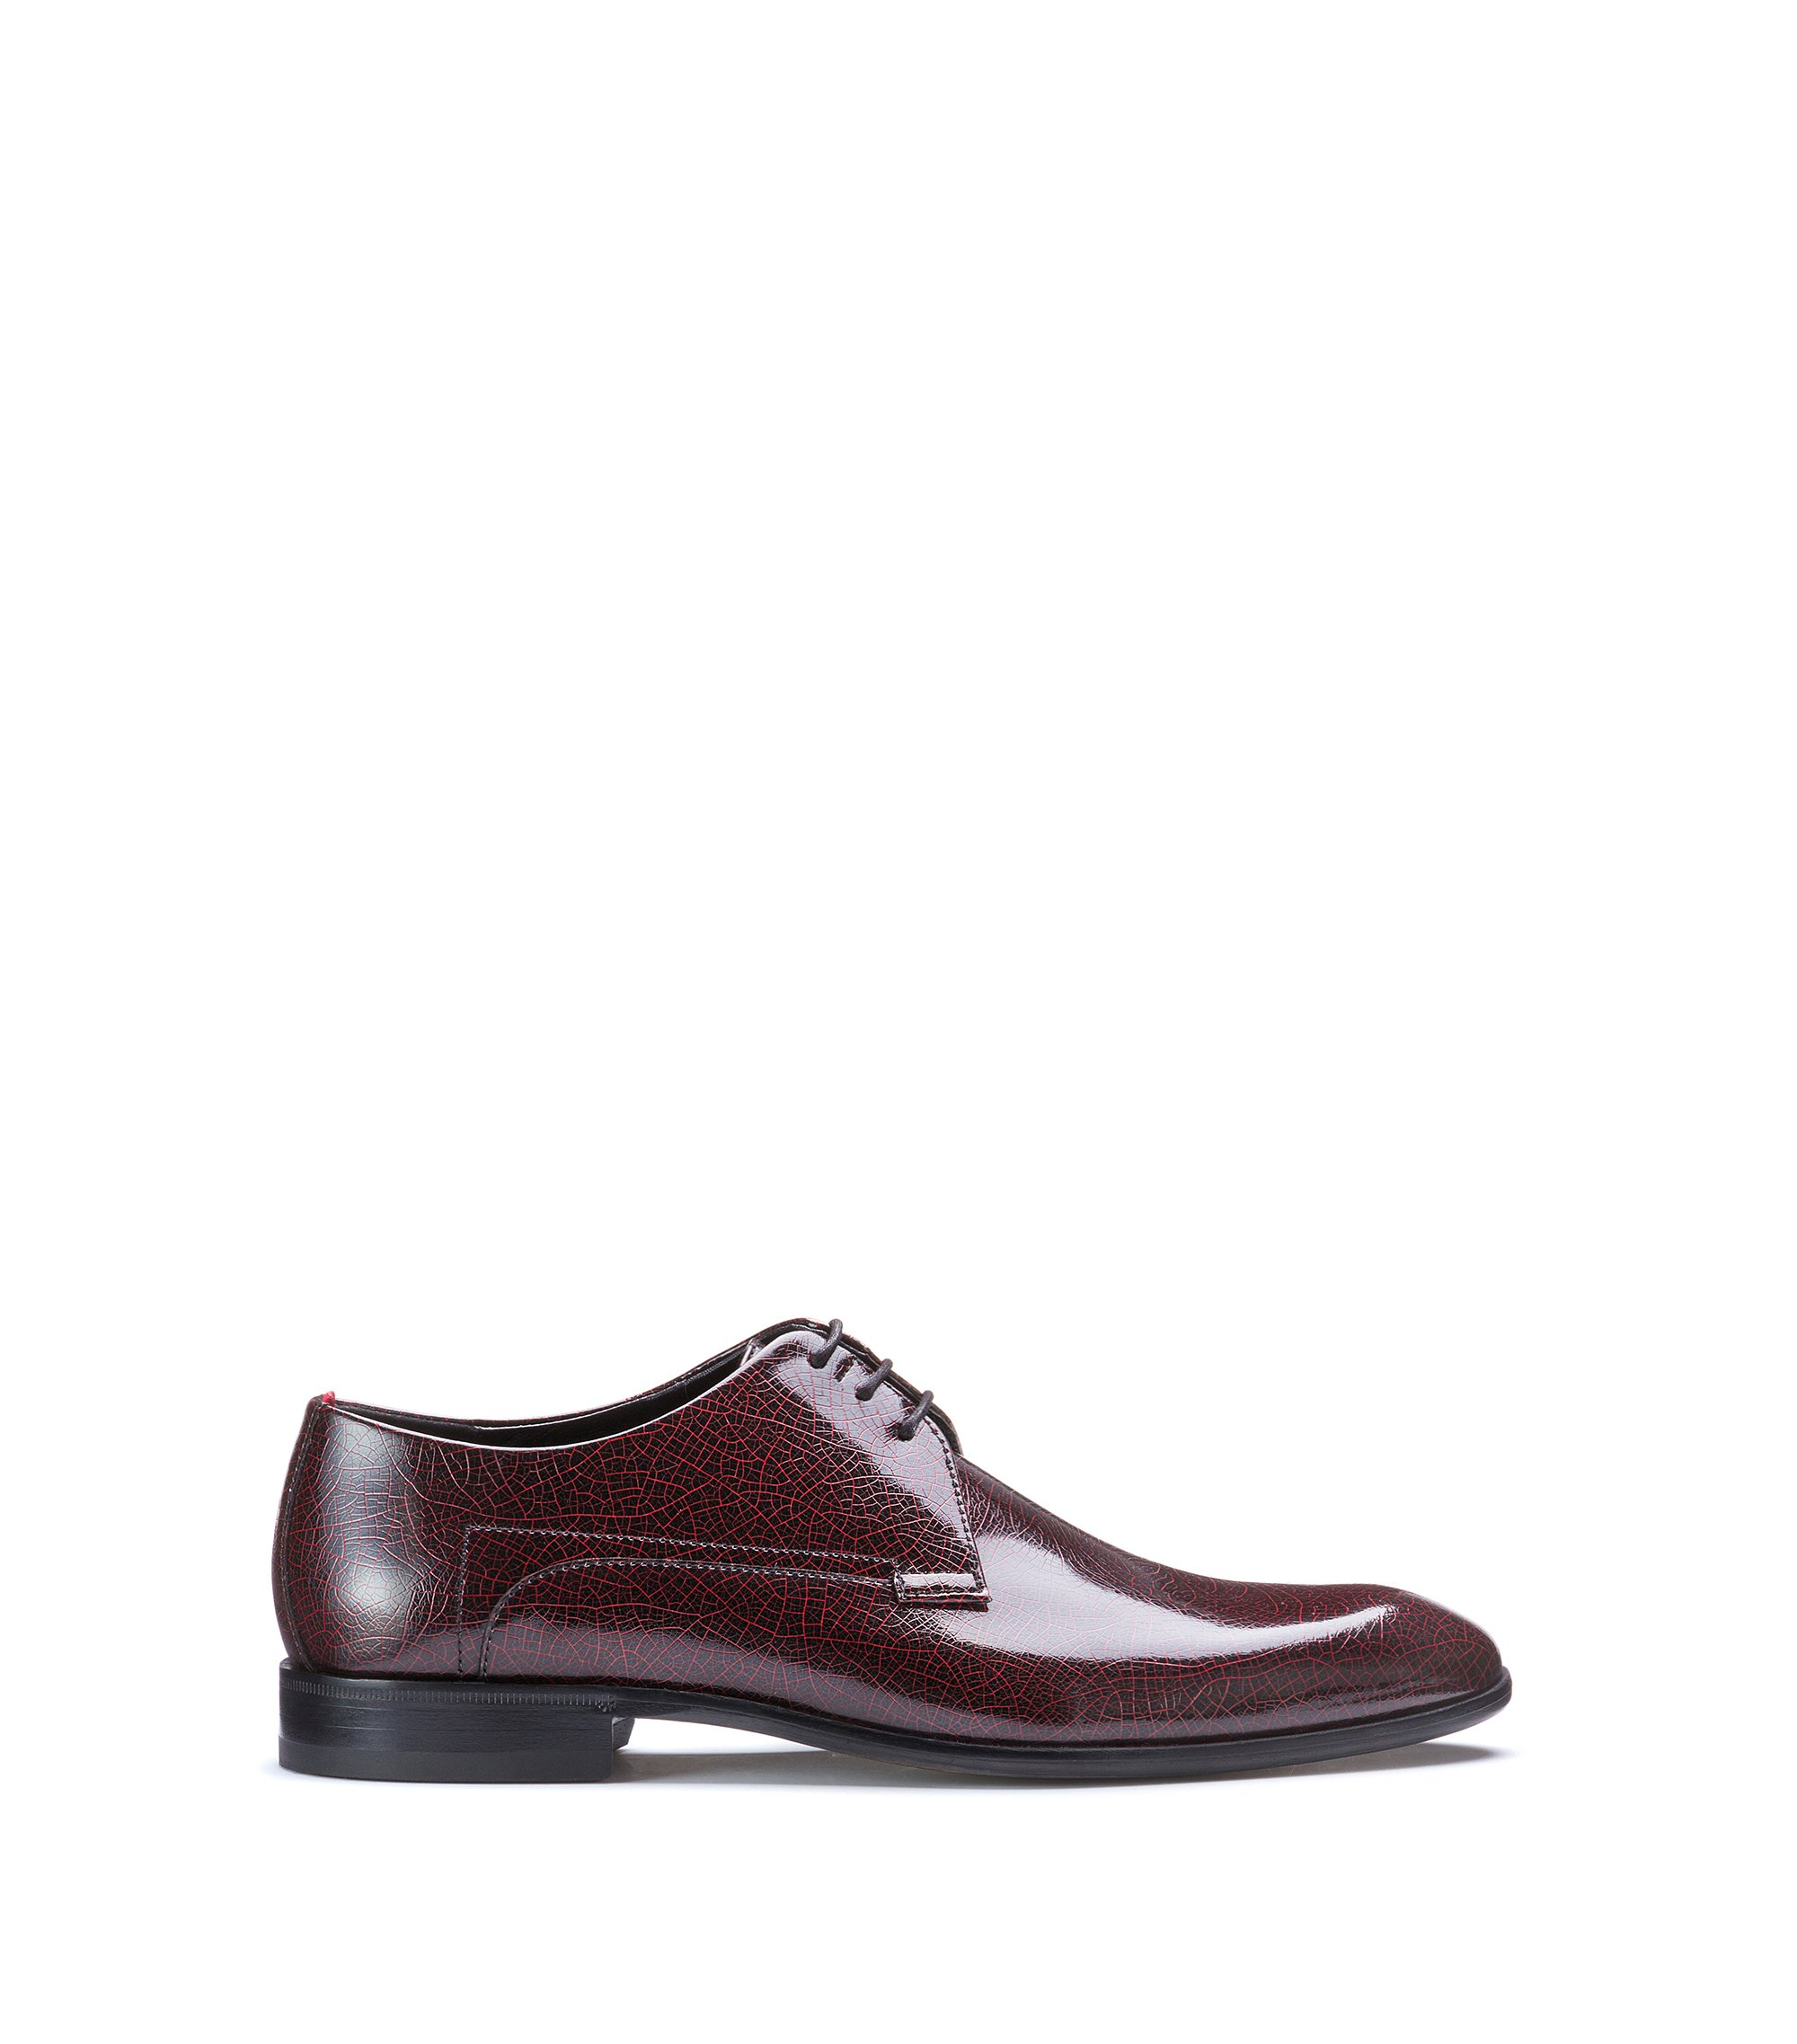 Italian Leather Derby Dress Shoe | Appeal Derb Pacr, Dark Red